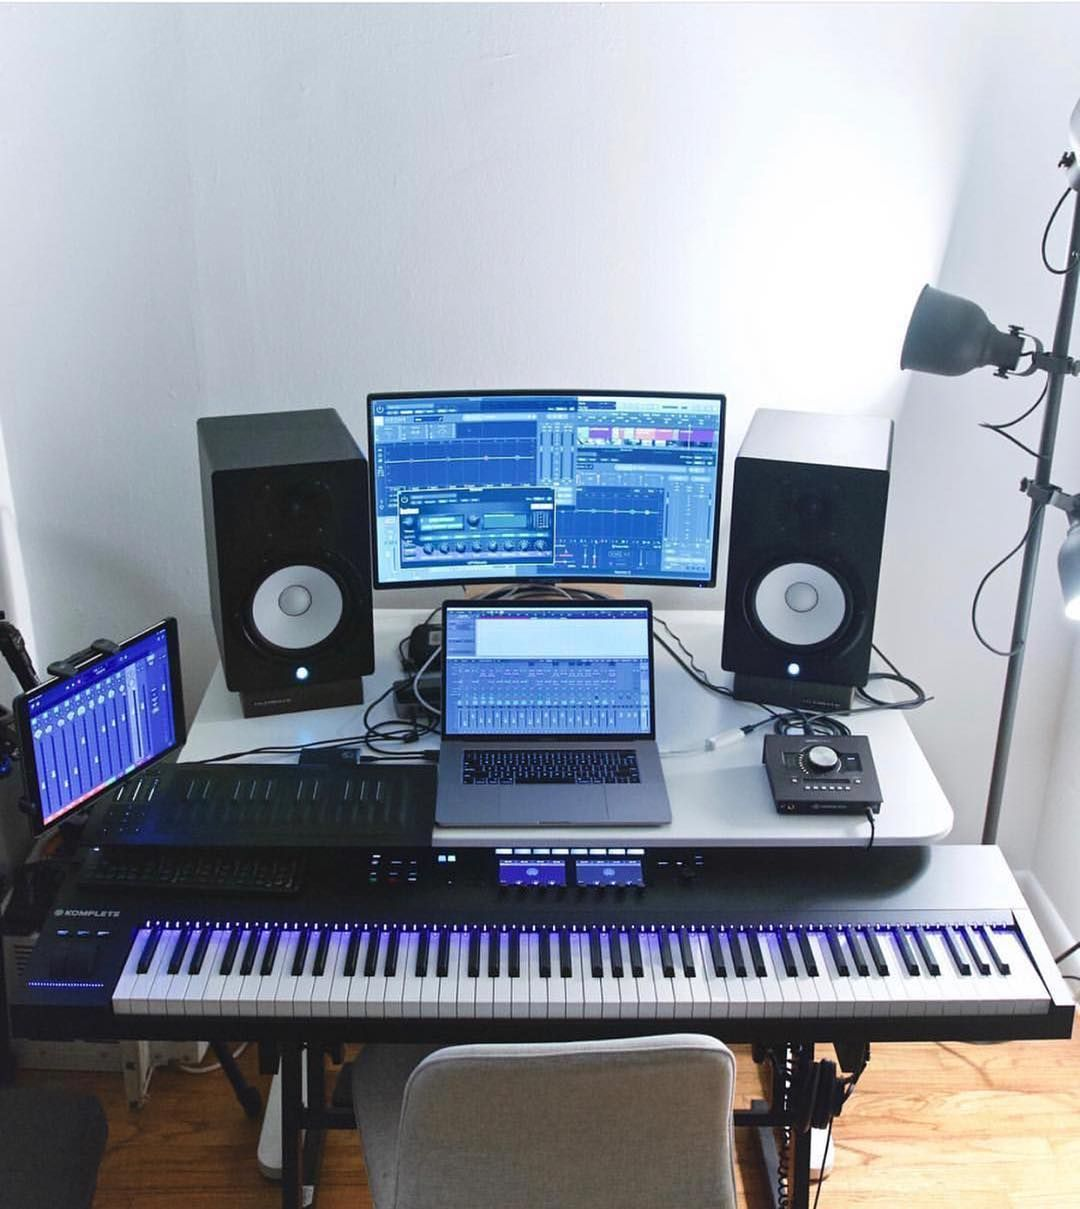 Pin By Miss Emmy Gibson On Musikzimmer In 2020 Music Studio Room Home Studio Music Home Studio Setup